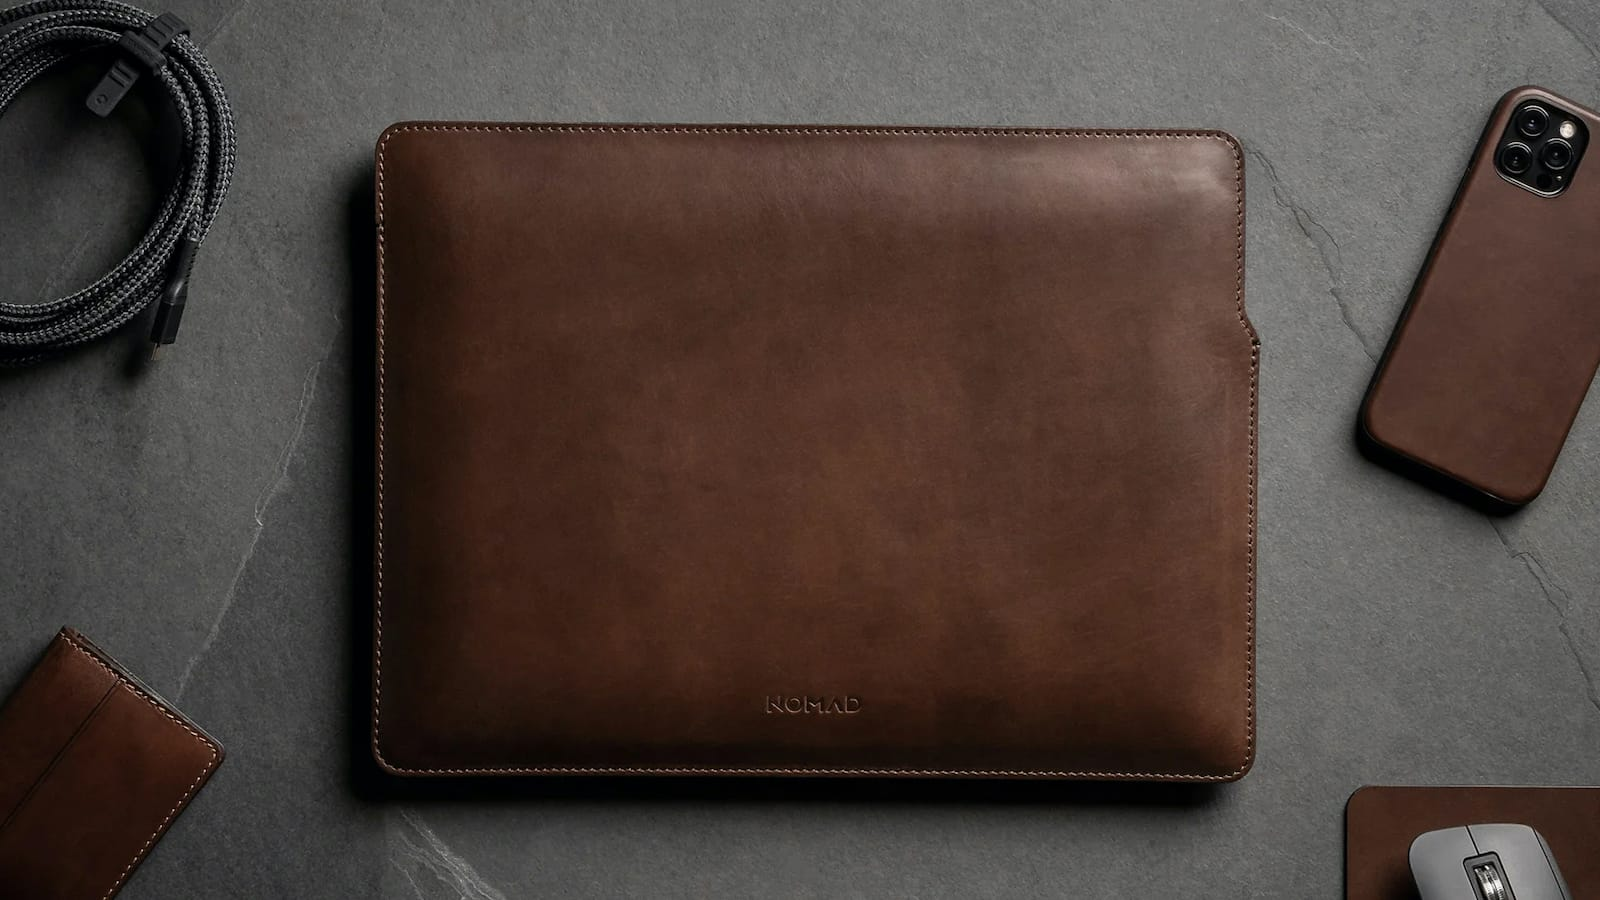 Nomad Leather Sleeve MacBook Pro cover is slim yet protective